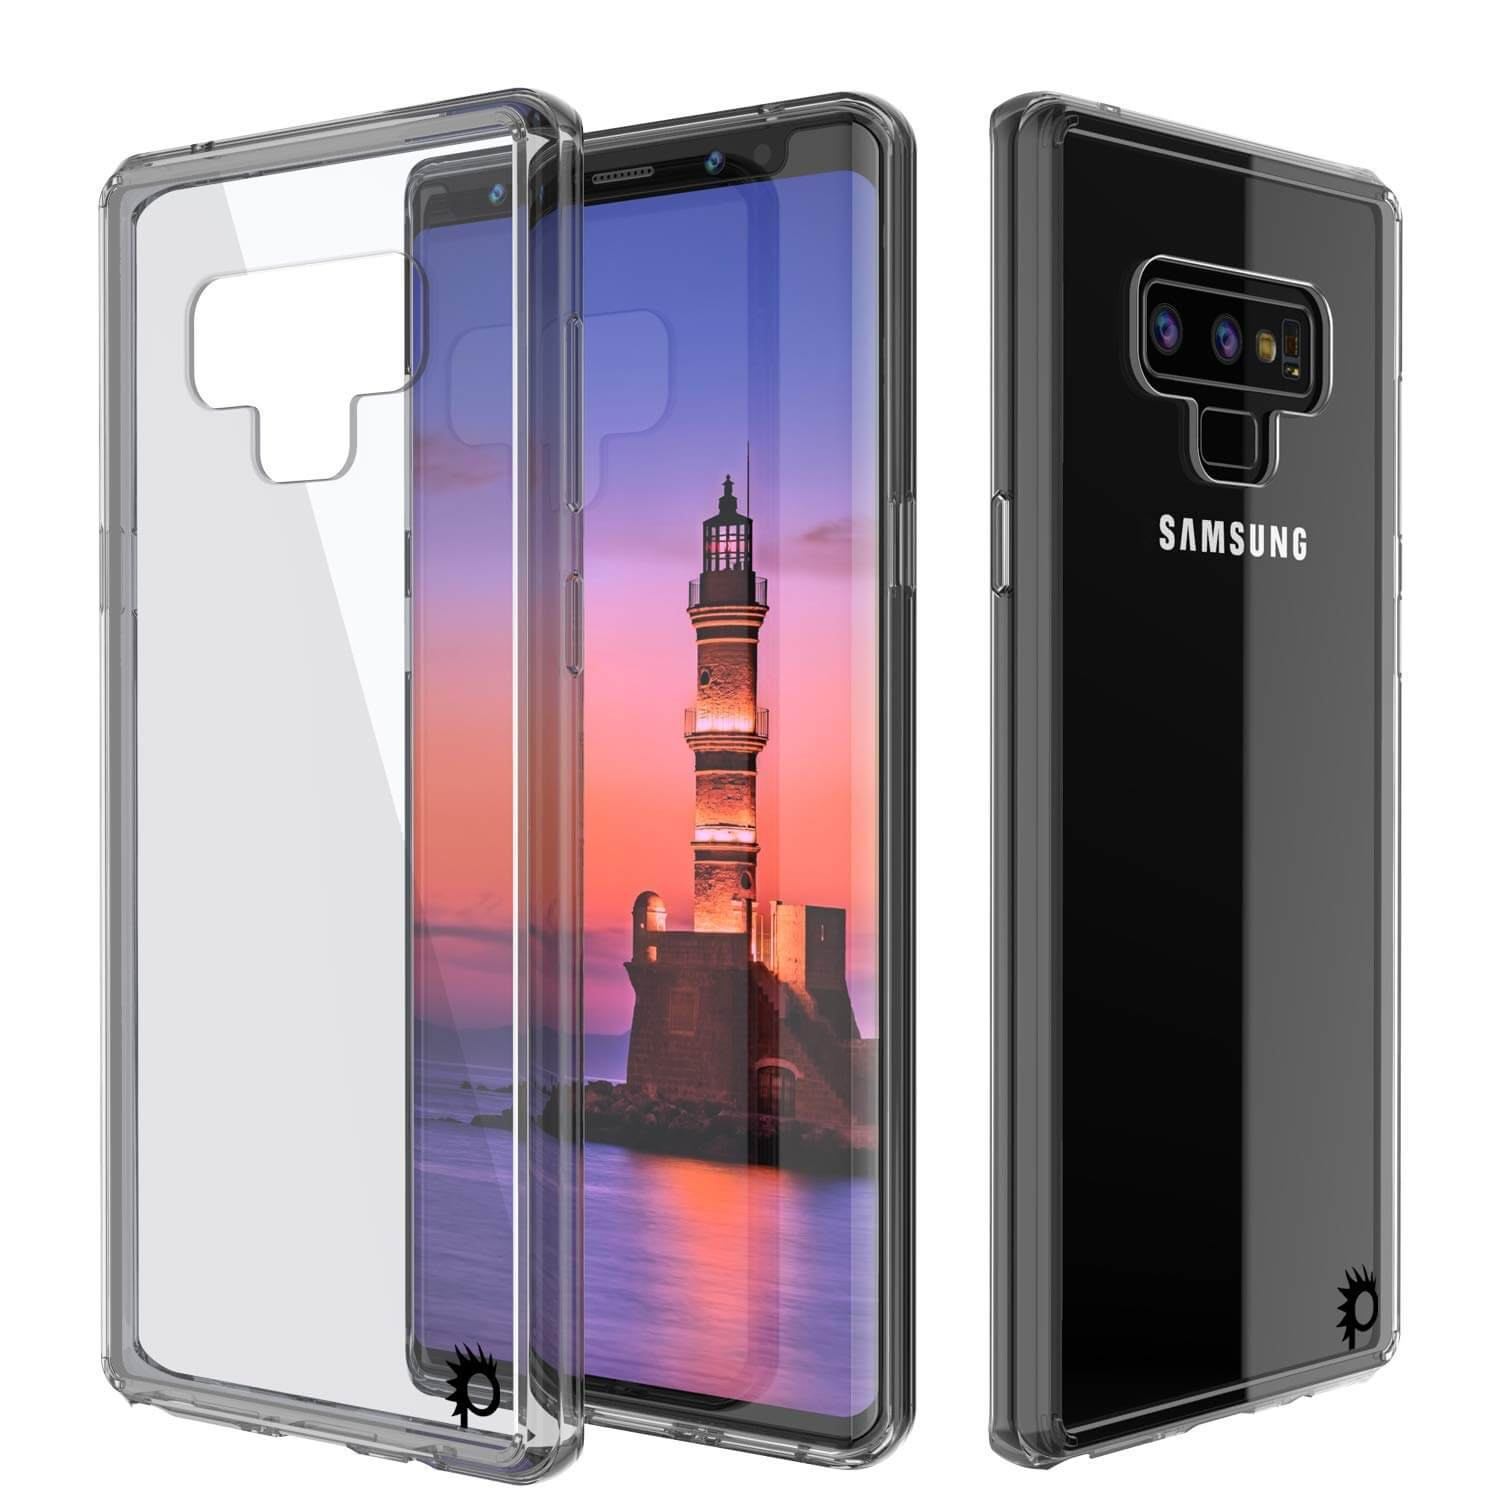 Galaxy Note 9 Punkcase Lucid-2.0 Series Slim Fit Armor Crystal Black Case Cover